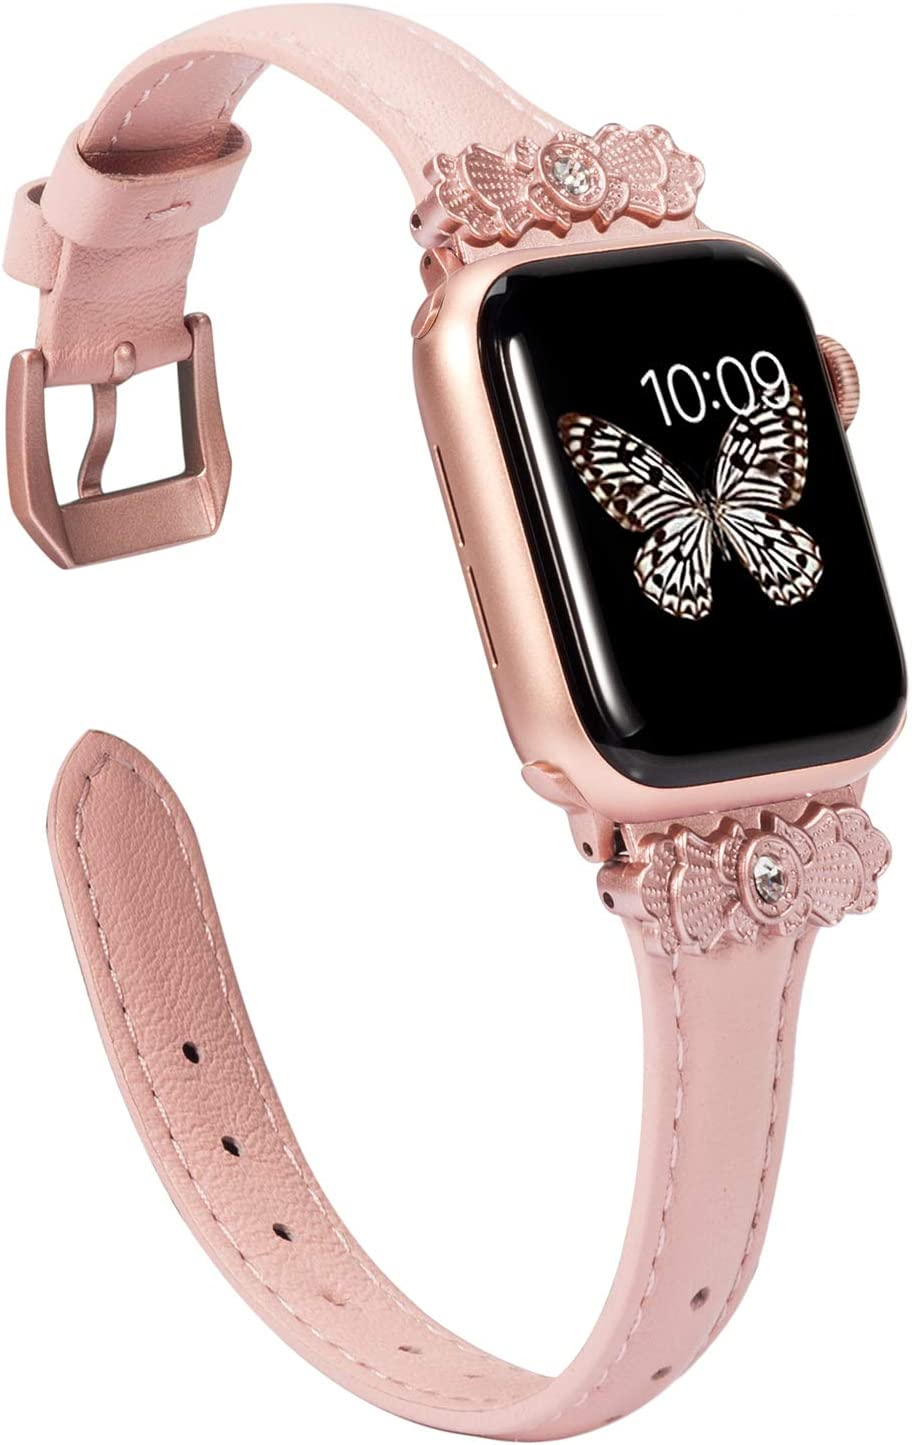 Wearlizer Thin Leather Compatible with Apple Watch Band 42mm 44mm for iWatch SE Womens Slim with Unique Metal Decoration Strap Stylish Wristband (Rose Gold Clasp) Series 6 5 4 3 2 1-Rose Pink